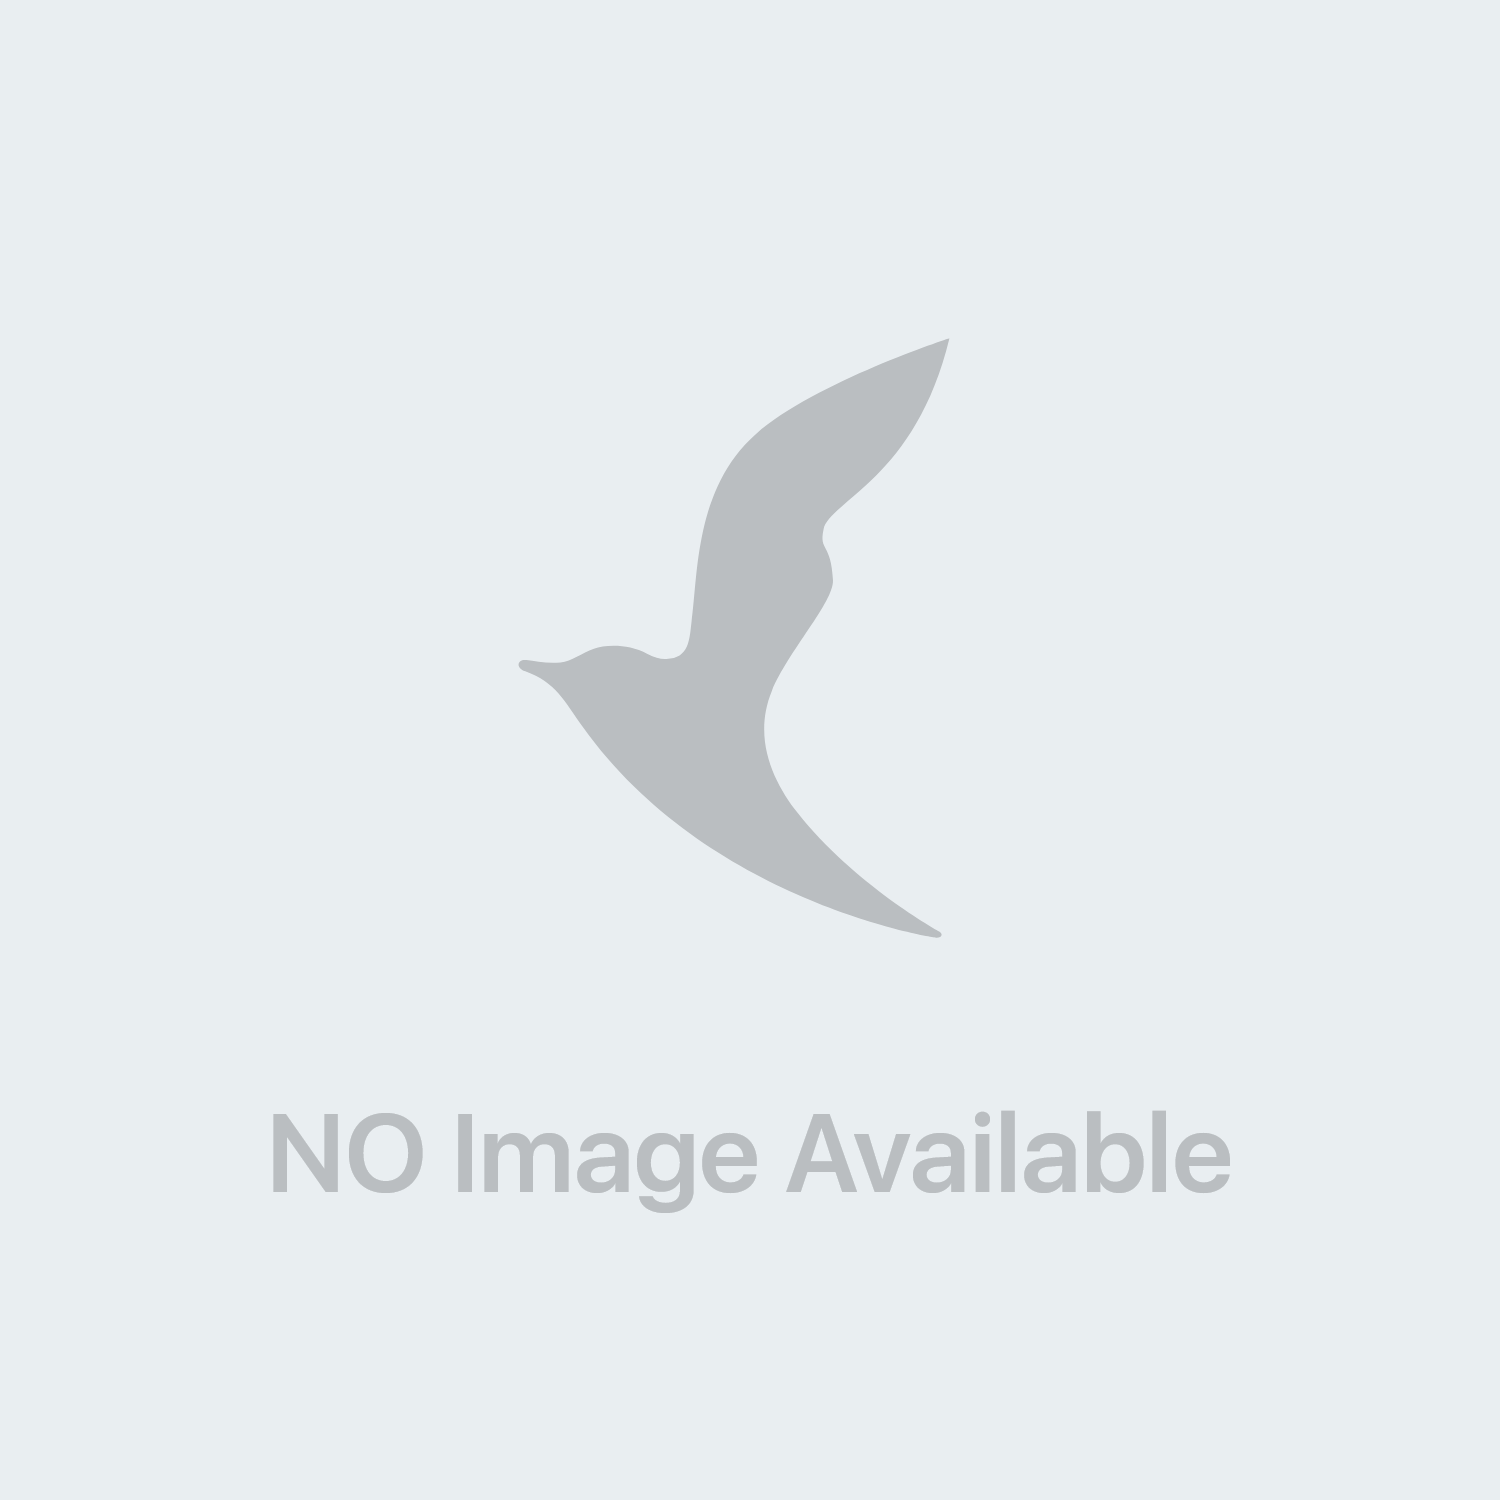 Foille Scottature Crema 29,5 gr